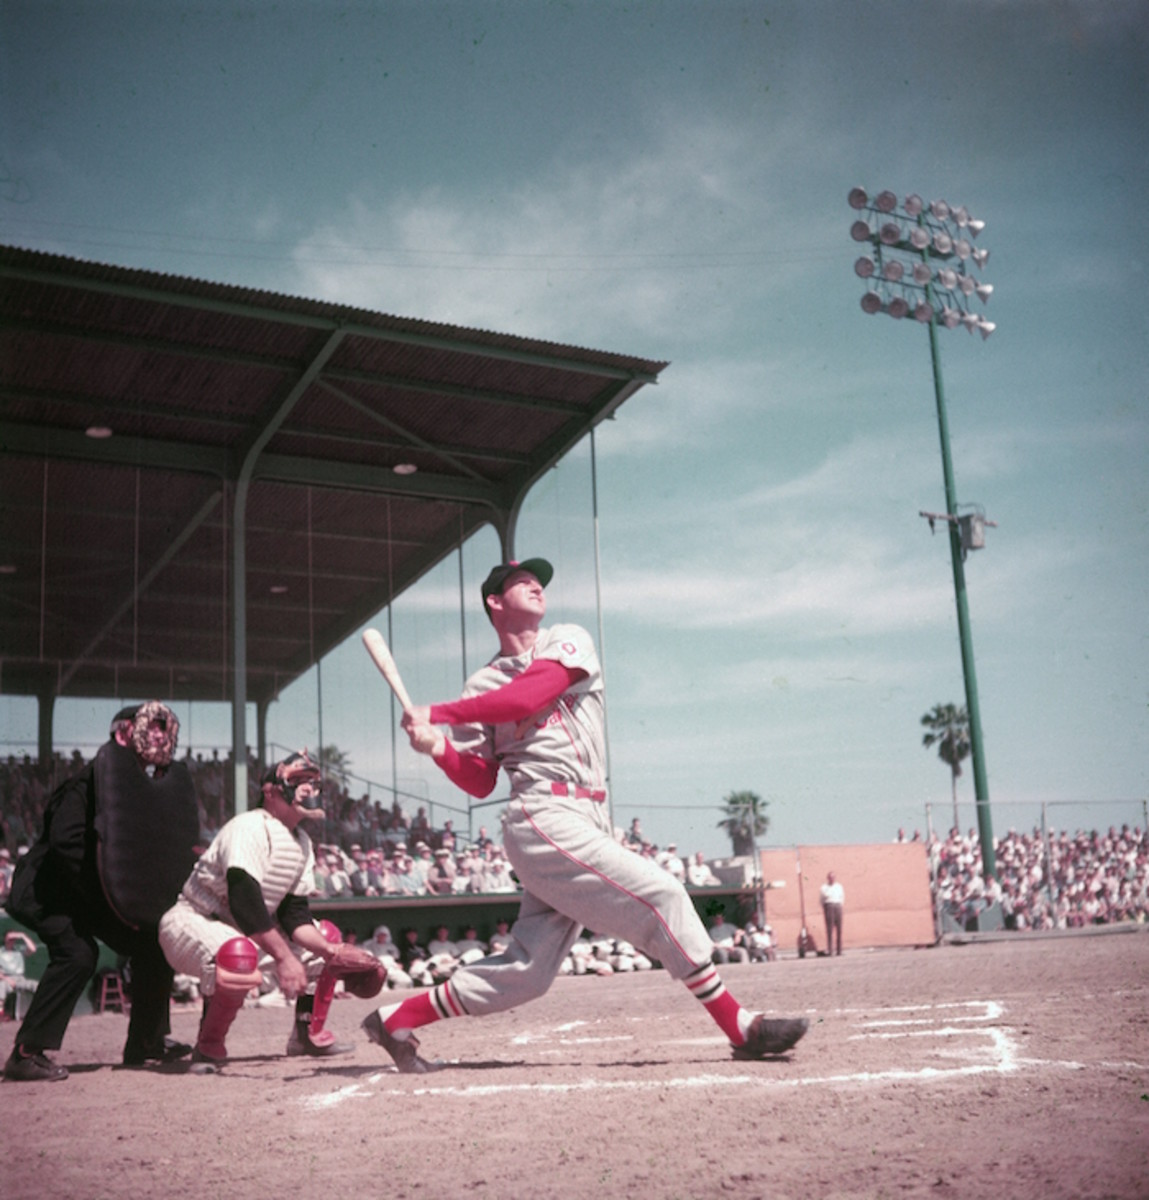 Stan Musial, the all-time greatest St. Louis Cardinal player, hitting in a game circa 1955. Photo: Hulton Archive/Getty Images